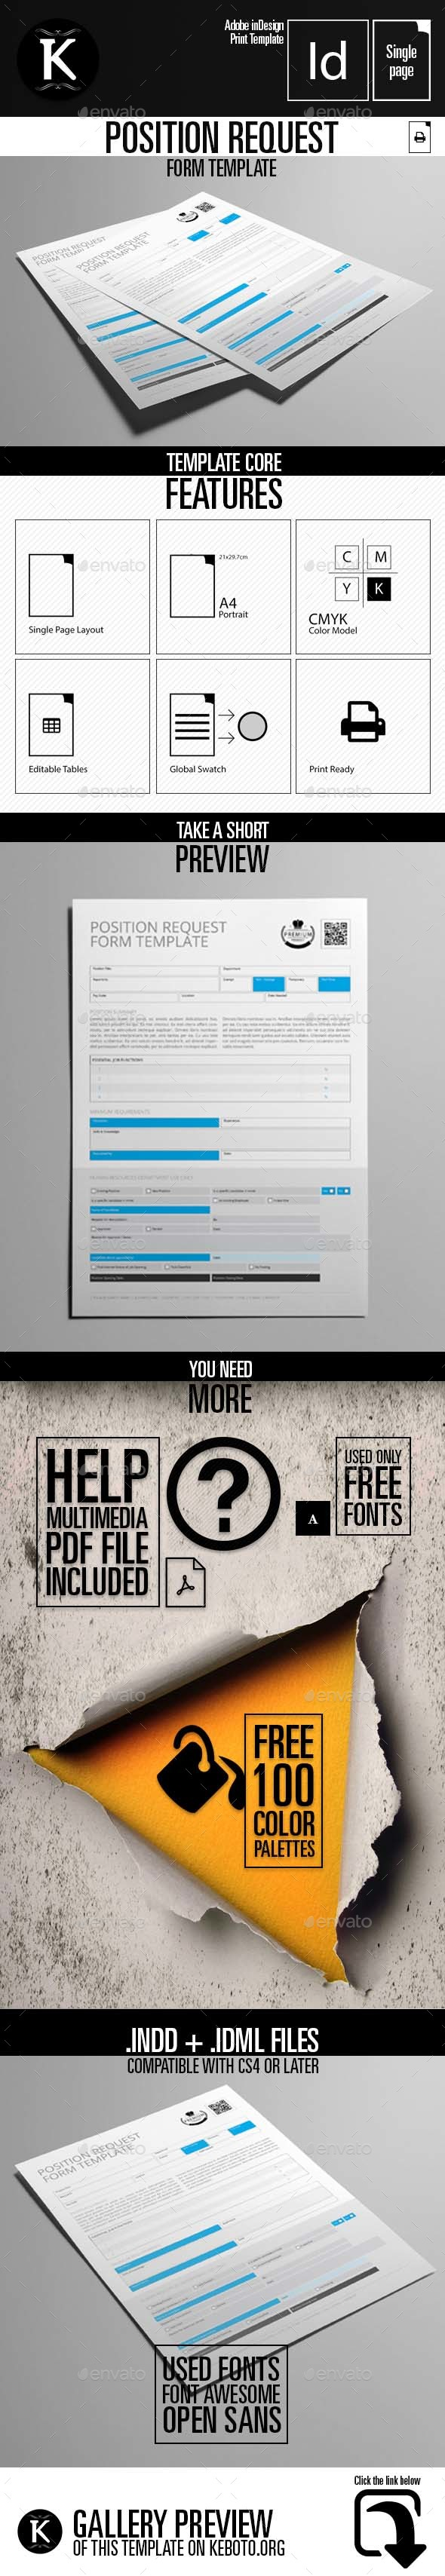 Position Request Form Template | Indesign templates, Adobe indesign ...